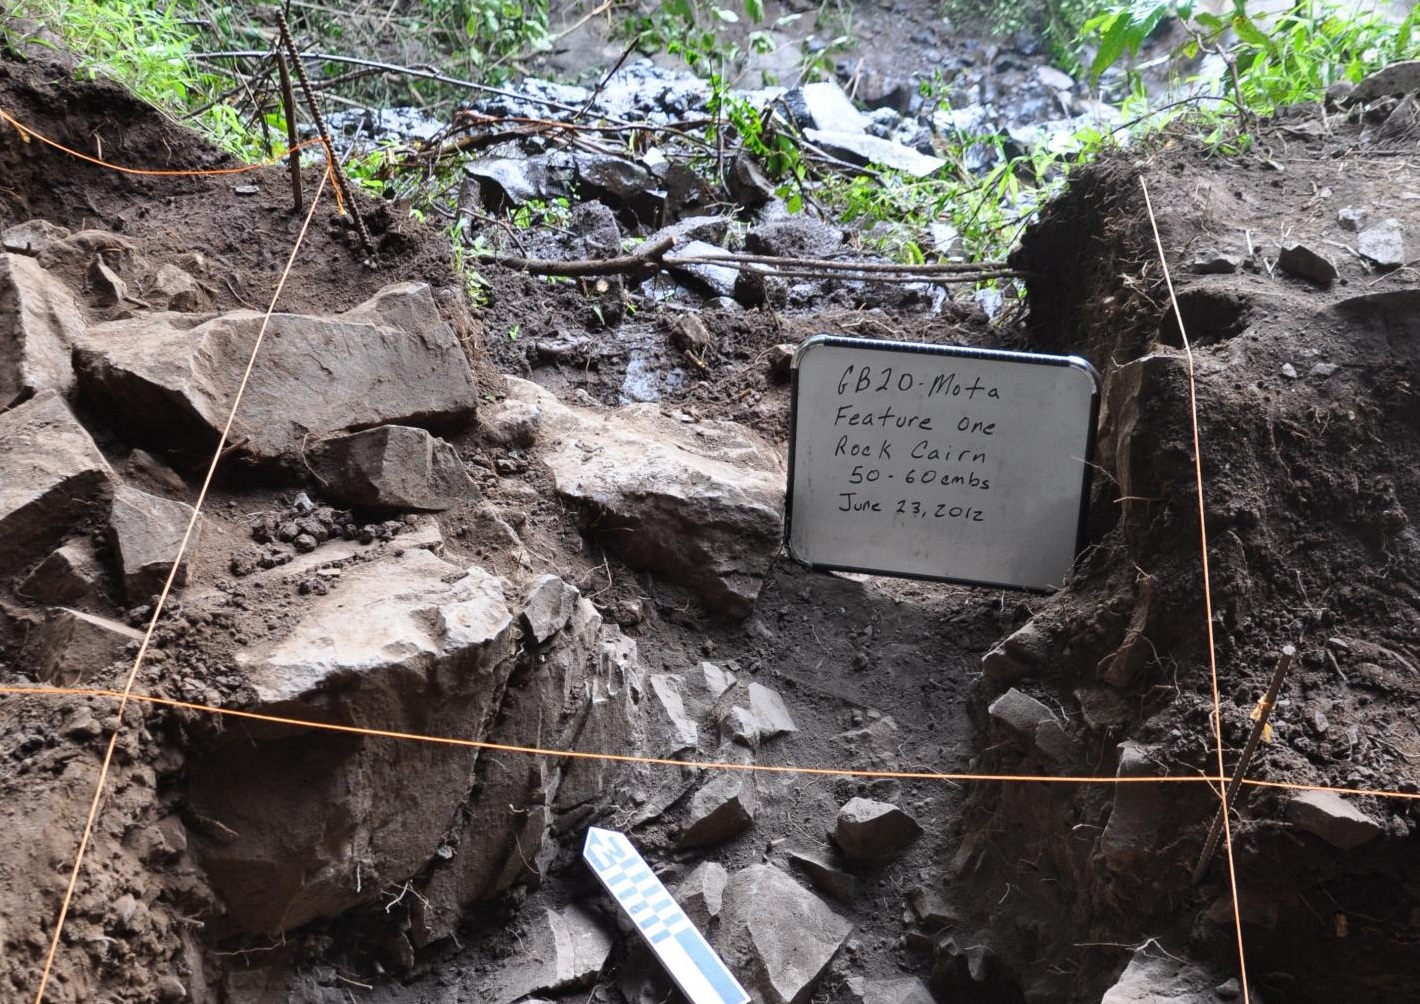 Mota cave -- this image shows an excavation of the rock cairn under which the burial was found. [Credit: Kathryn and John Arthur]